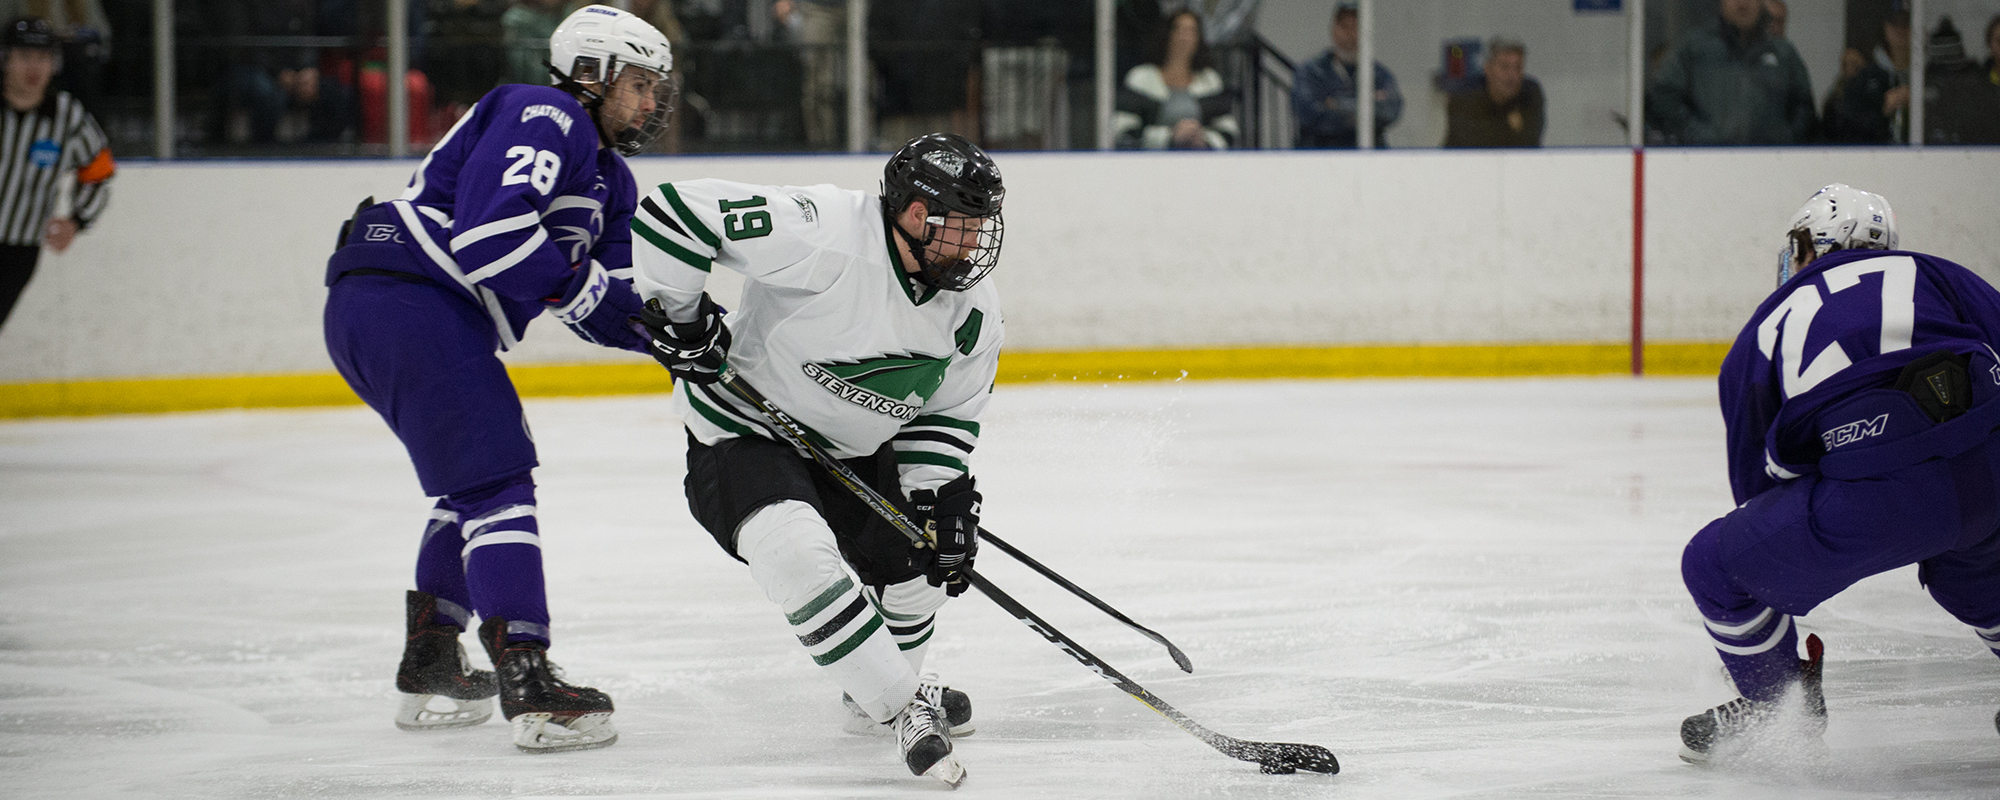 Watt Records Four Points in Mustangs 7-1 UCHC Victory Over Chatham